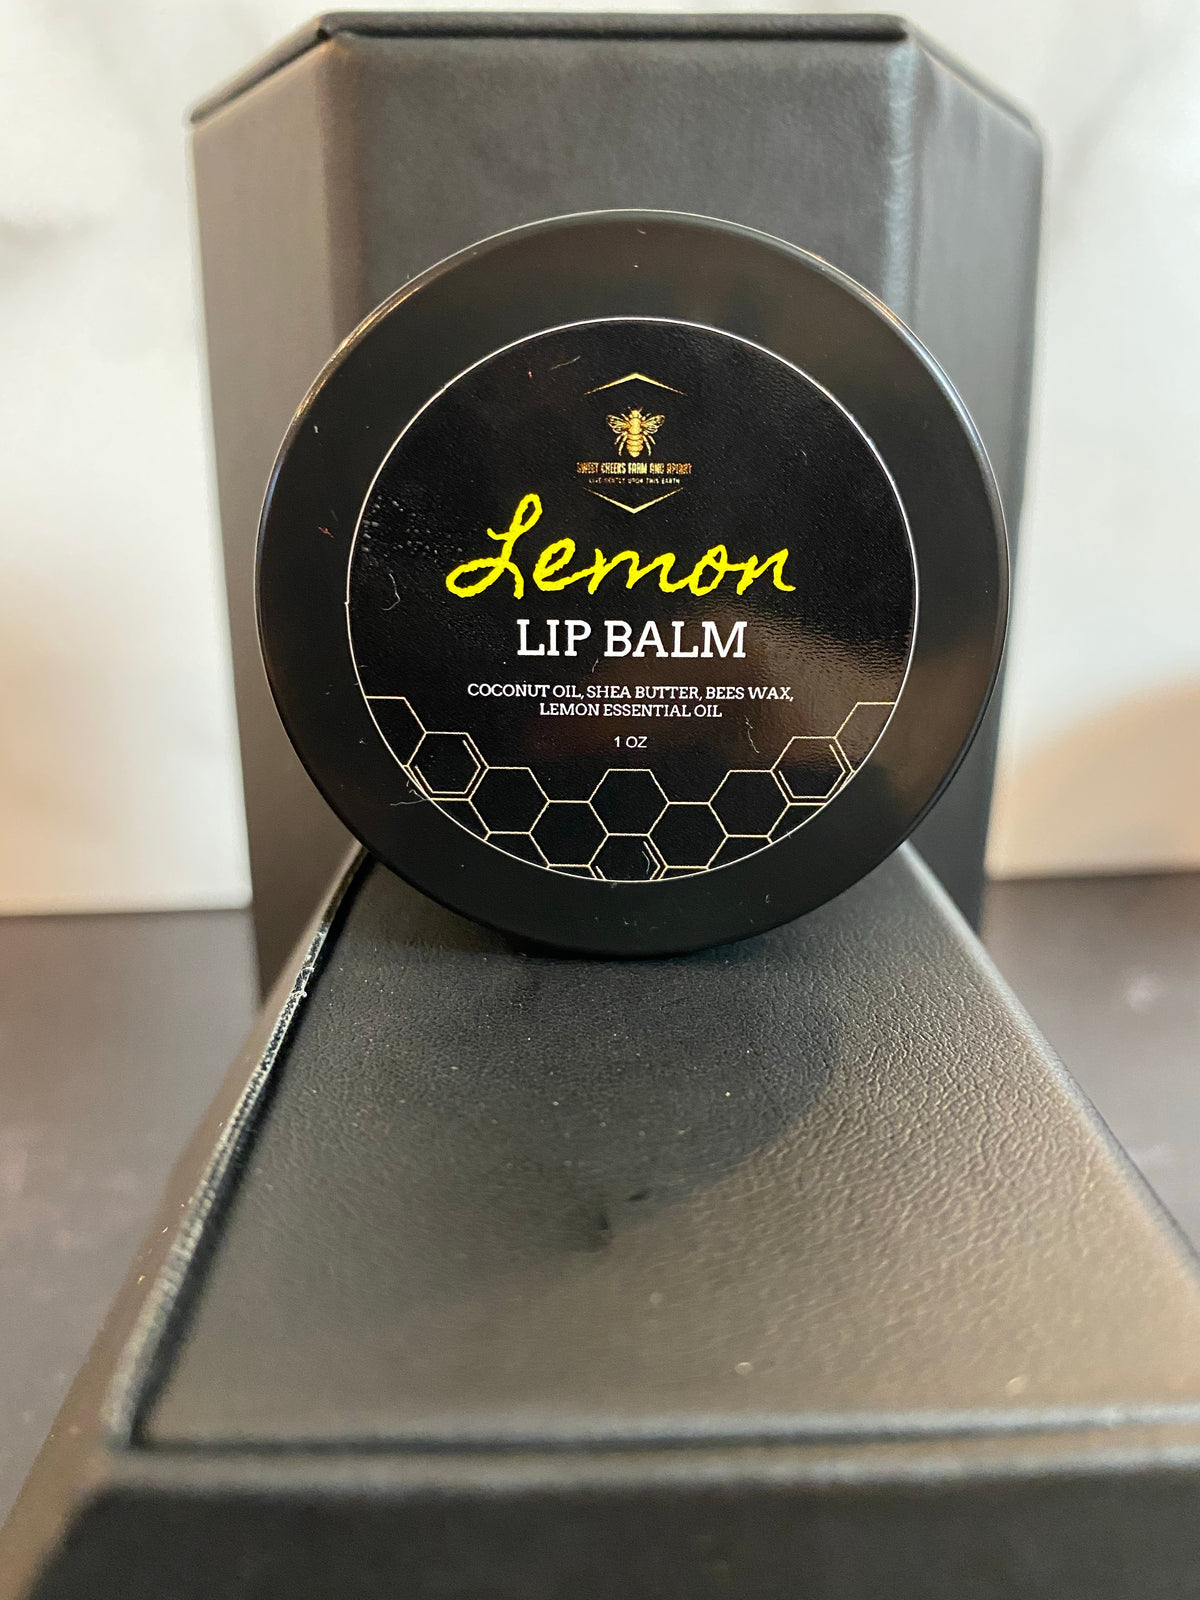 Lemon Lip Balm 1 oz